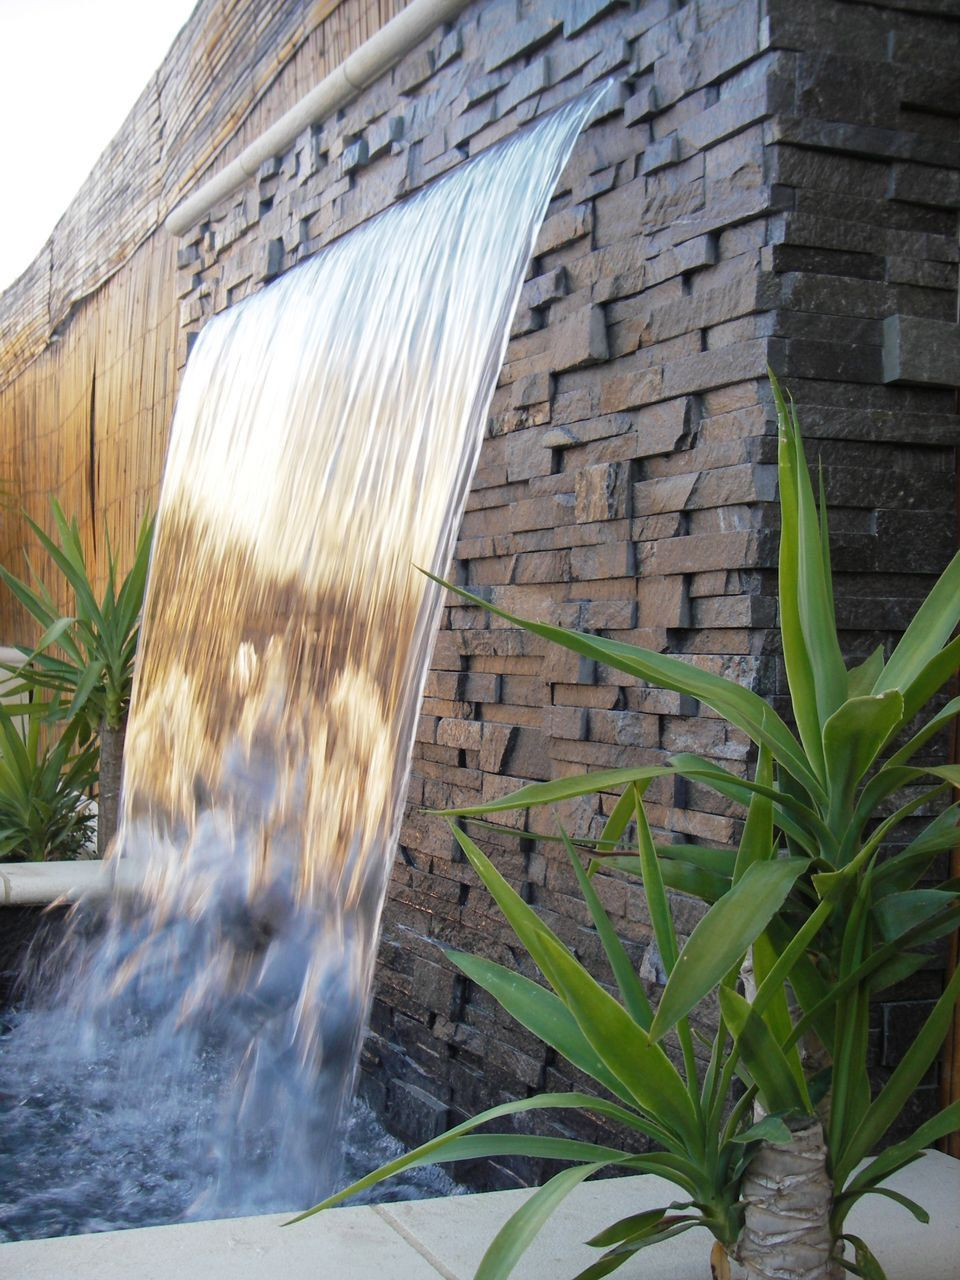 Wall Fountains Outdoor water features for backyard | features, wall features, sheer